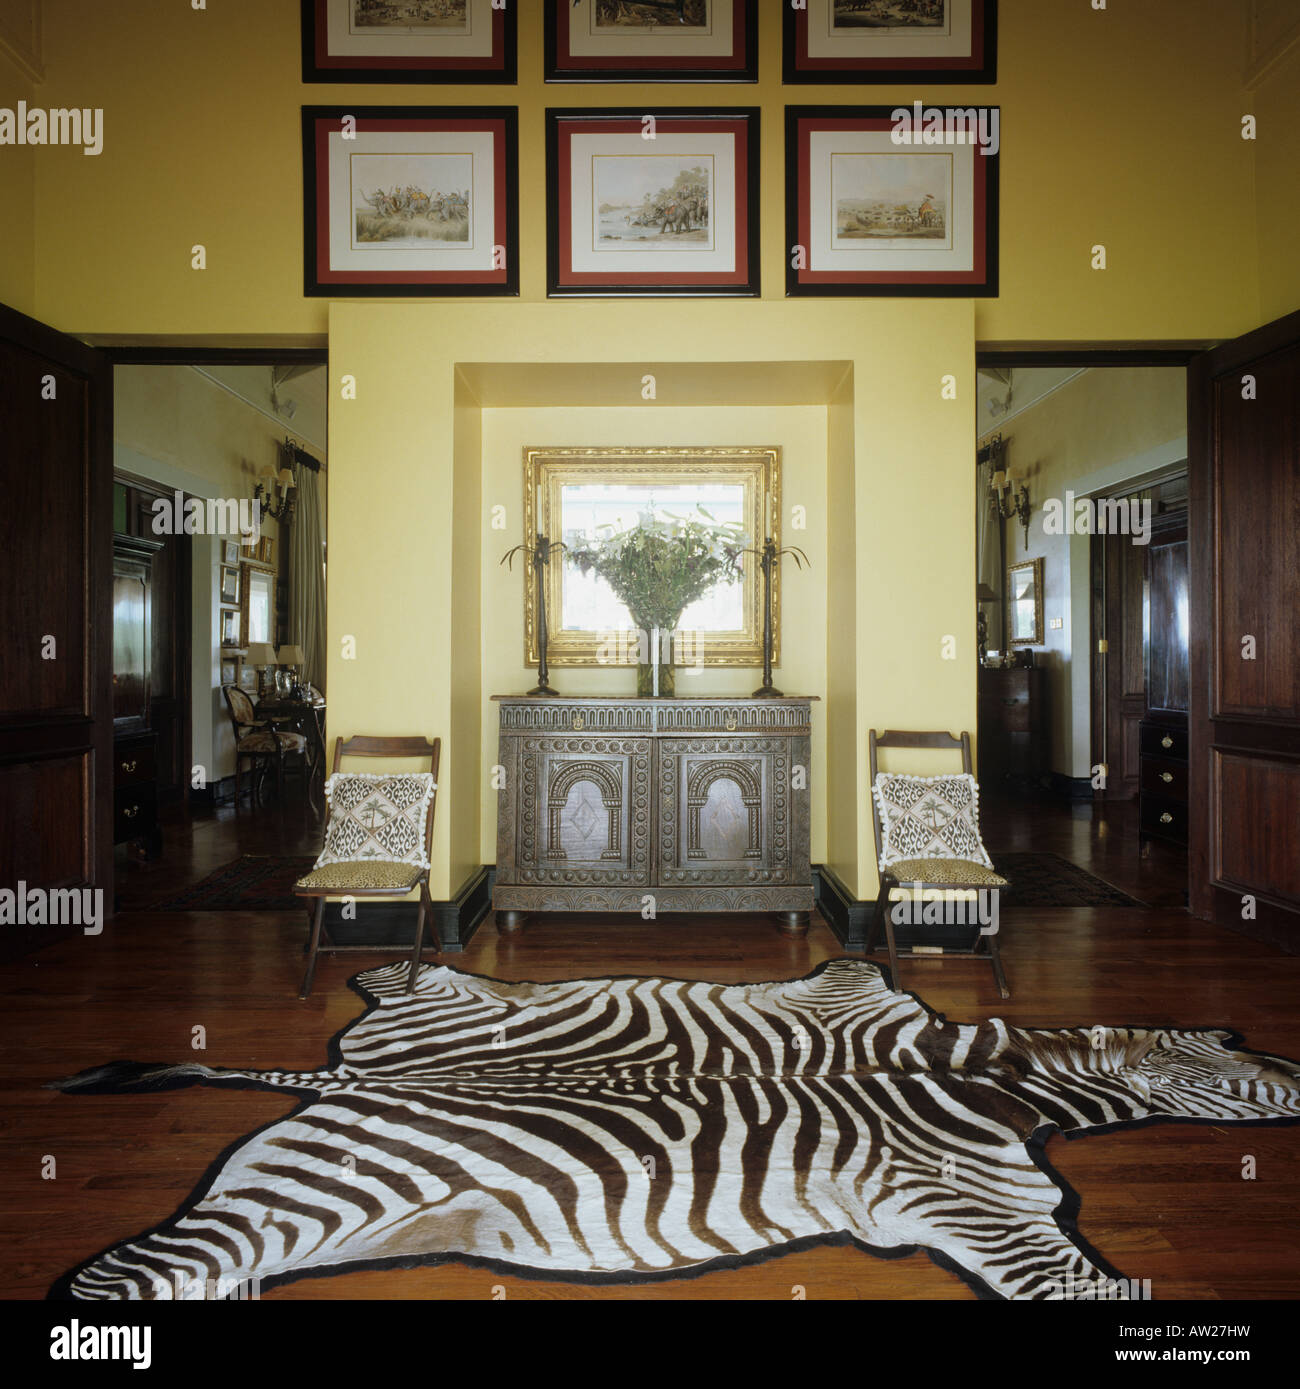 zebra skin floor covering in the entrance lobby of a Zimbabwean farmhouse - Stock Image